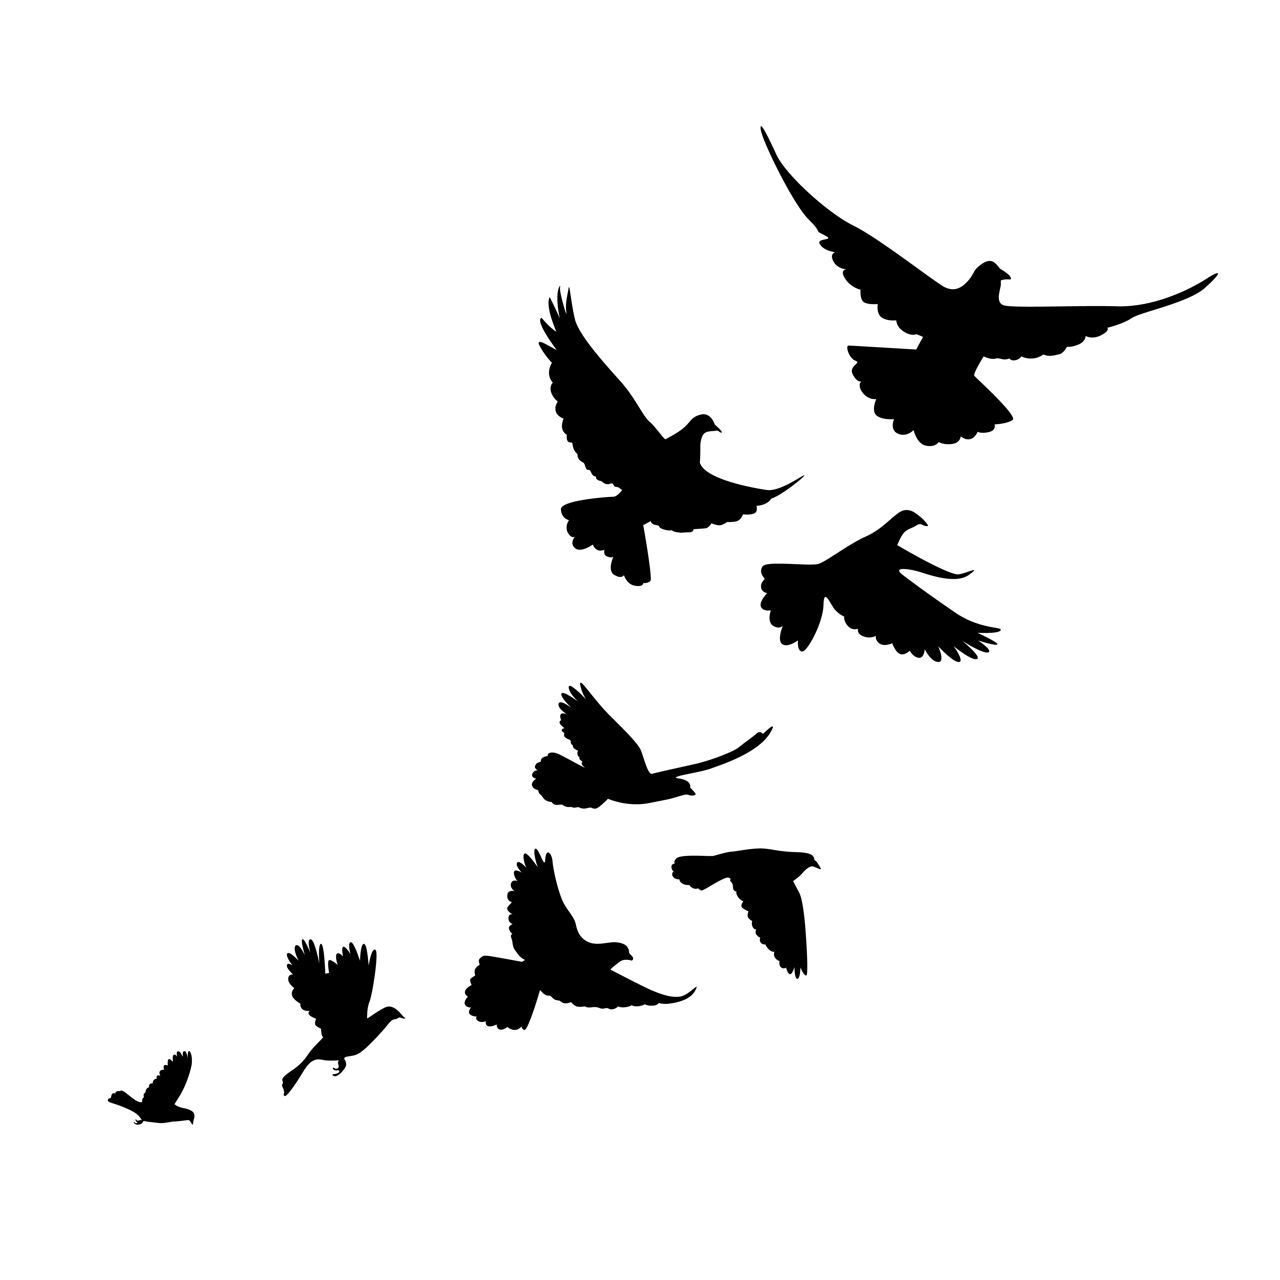 Silhouette Bird Tattoos At Getdrawings Free For Personal Use